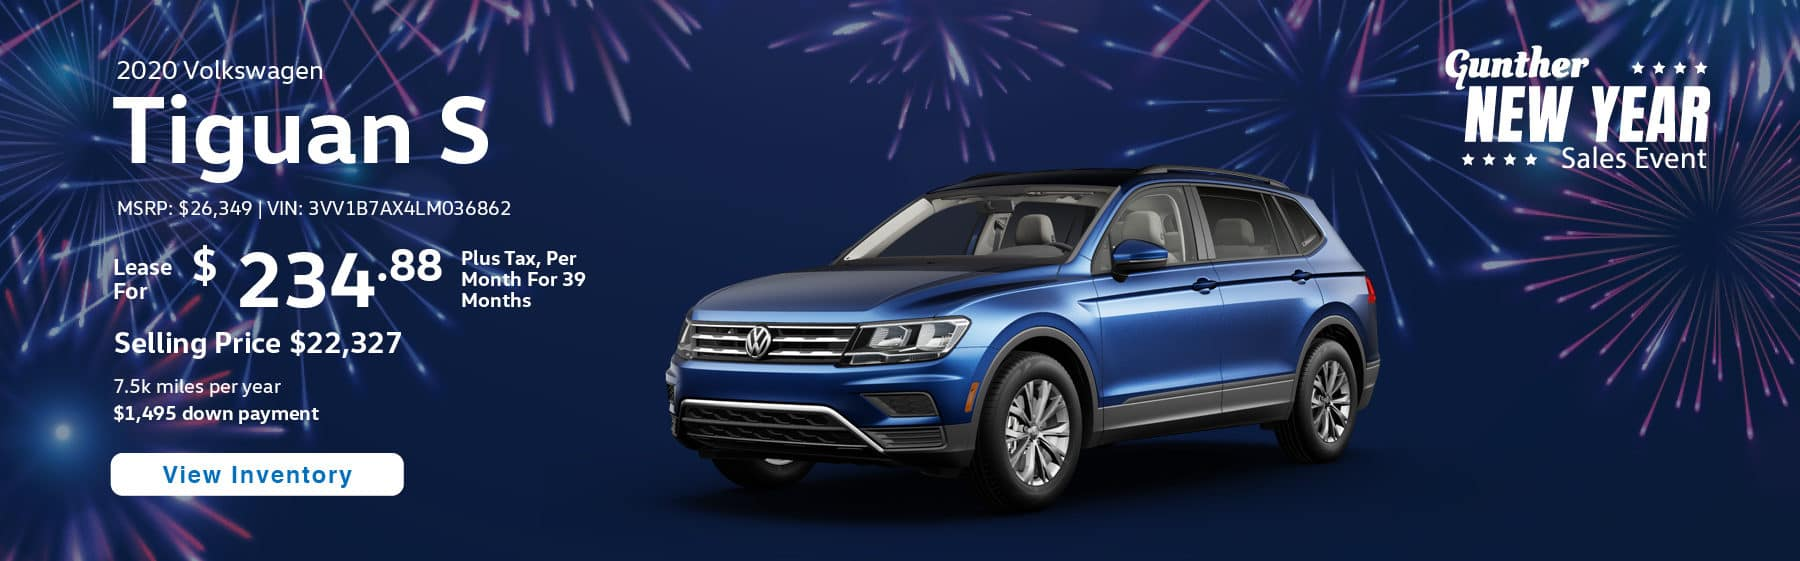 Lease the 2020 Tiguan S for $234.88 per month, plus tax for 39 months.